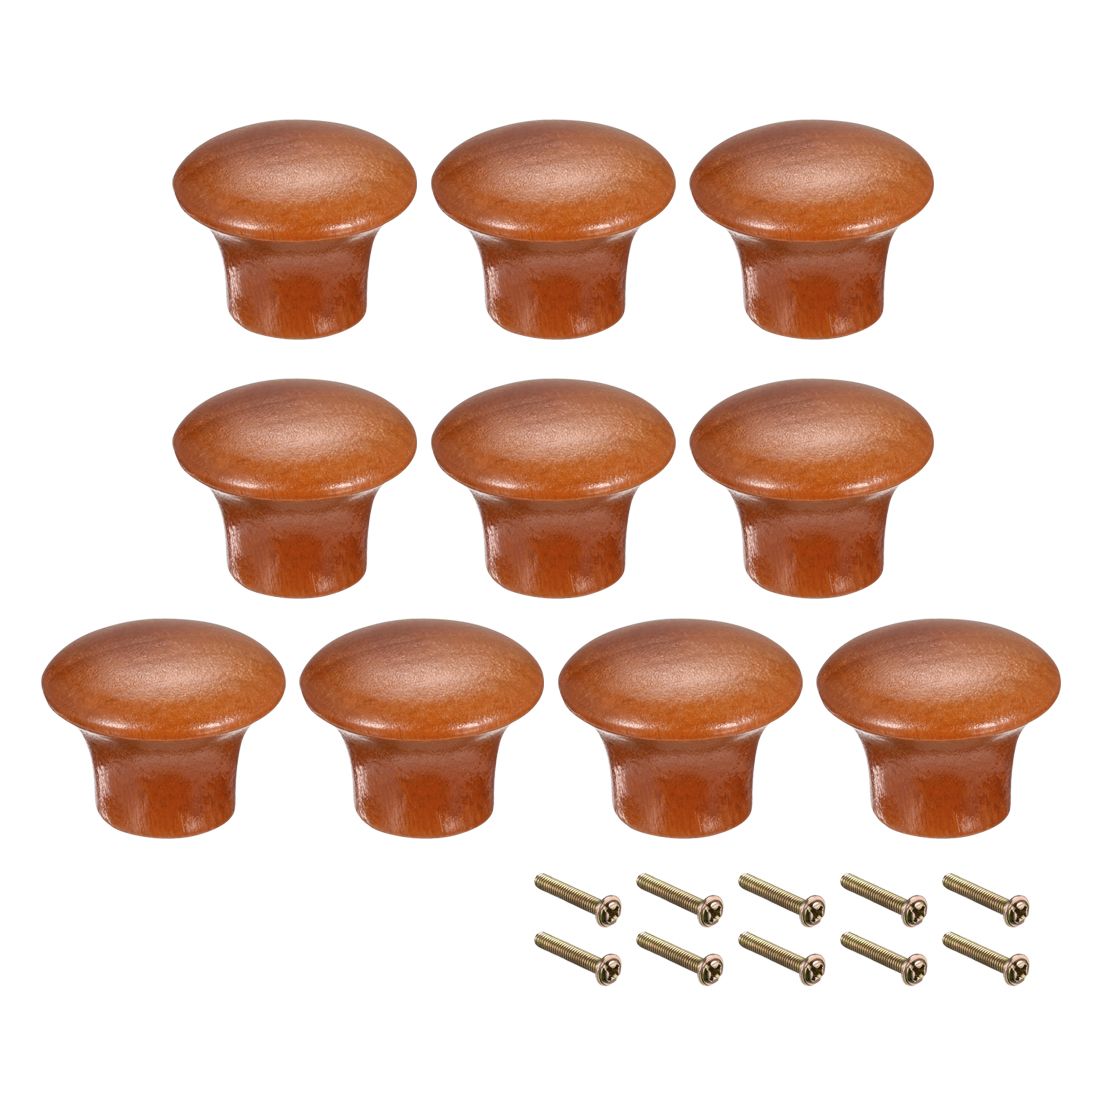 uxcell Round Pull Knob Handle 23mm Dia Cabinet Furniture Bedroom Kitchen Drawer 10pcs|Cabinet Knobs| |  - title=